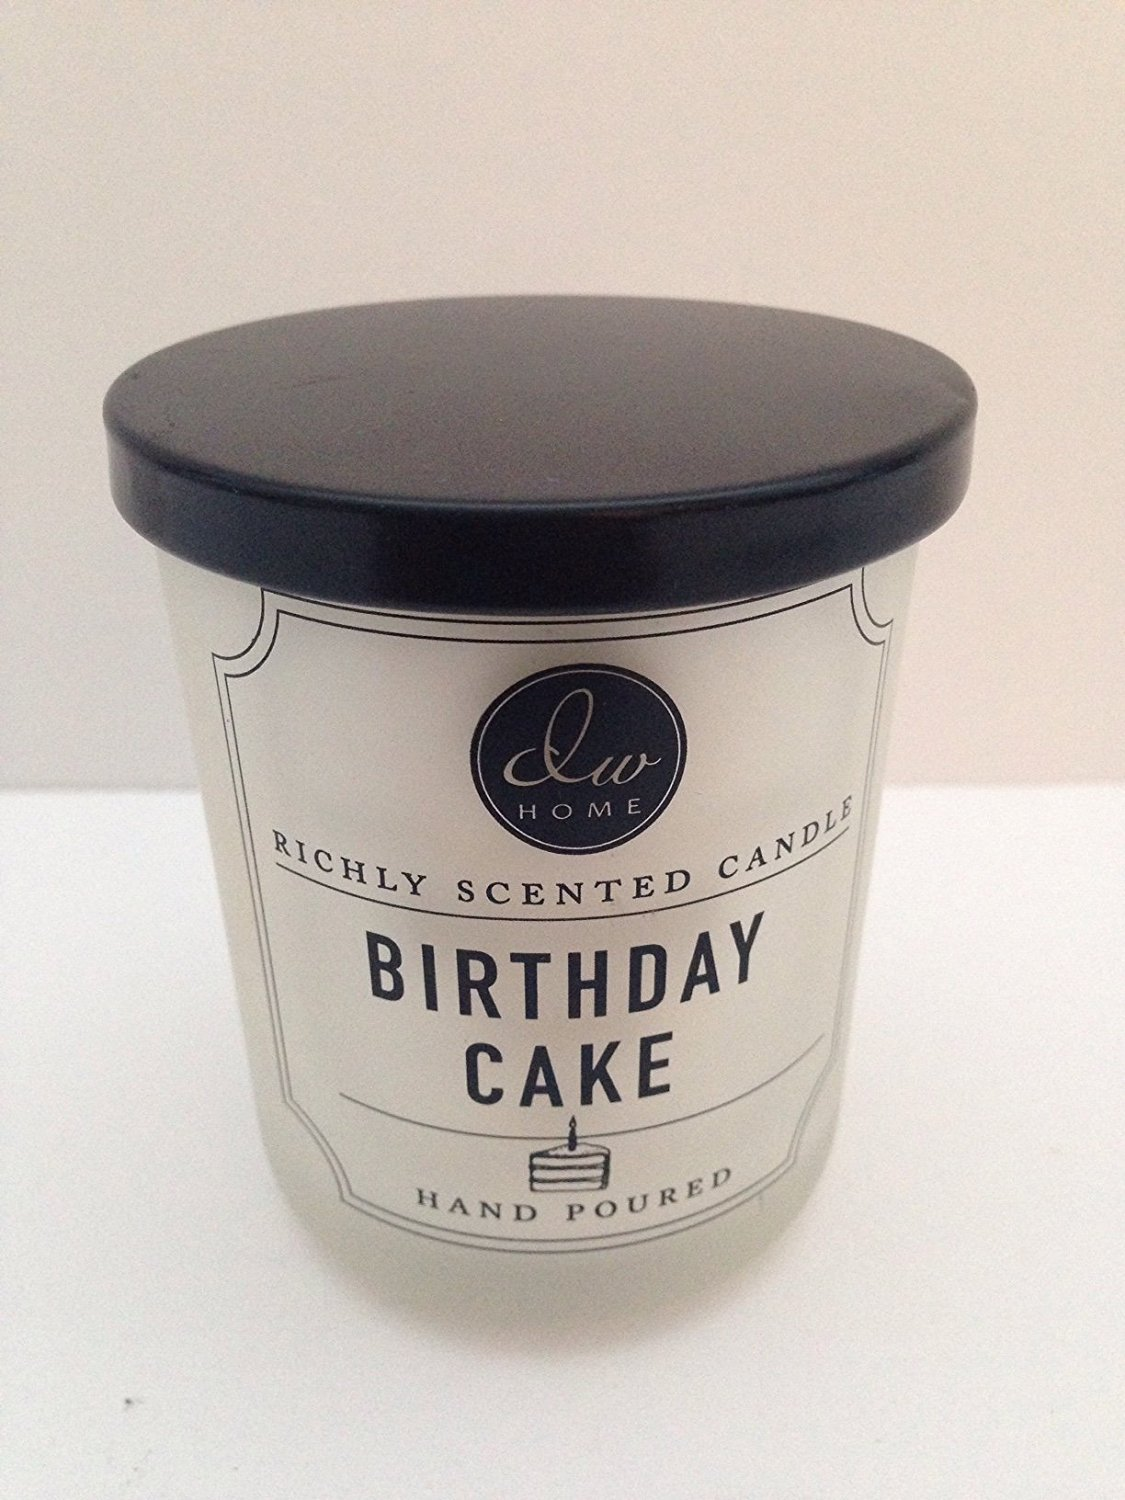 Amazon Convenient Travel Size BIRTHDAY CAKE Vanilla Scented Candle In Frosted White Jar Black Lid Home Kitchen